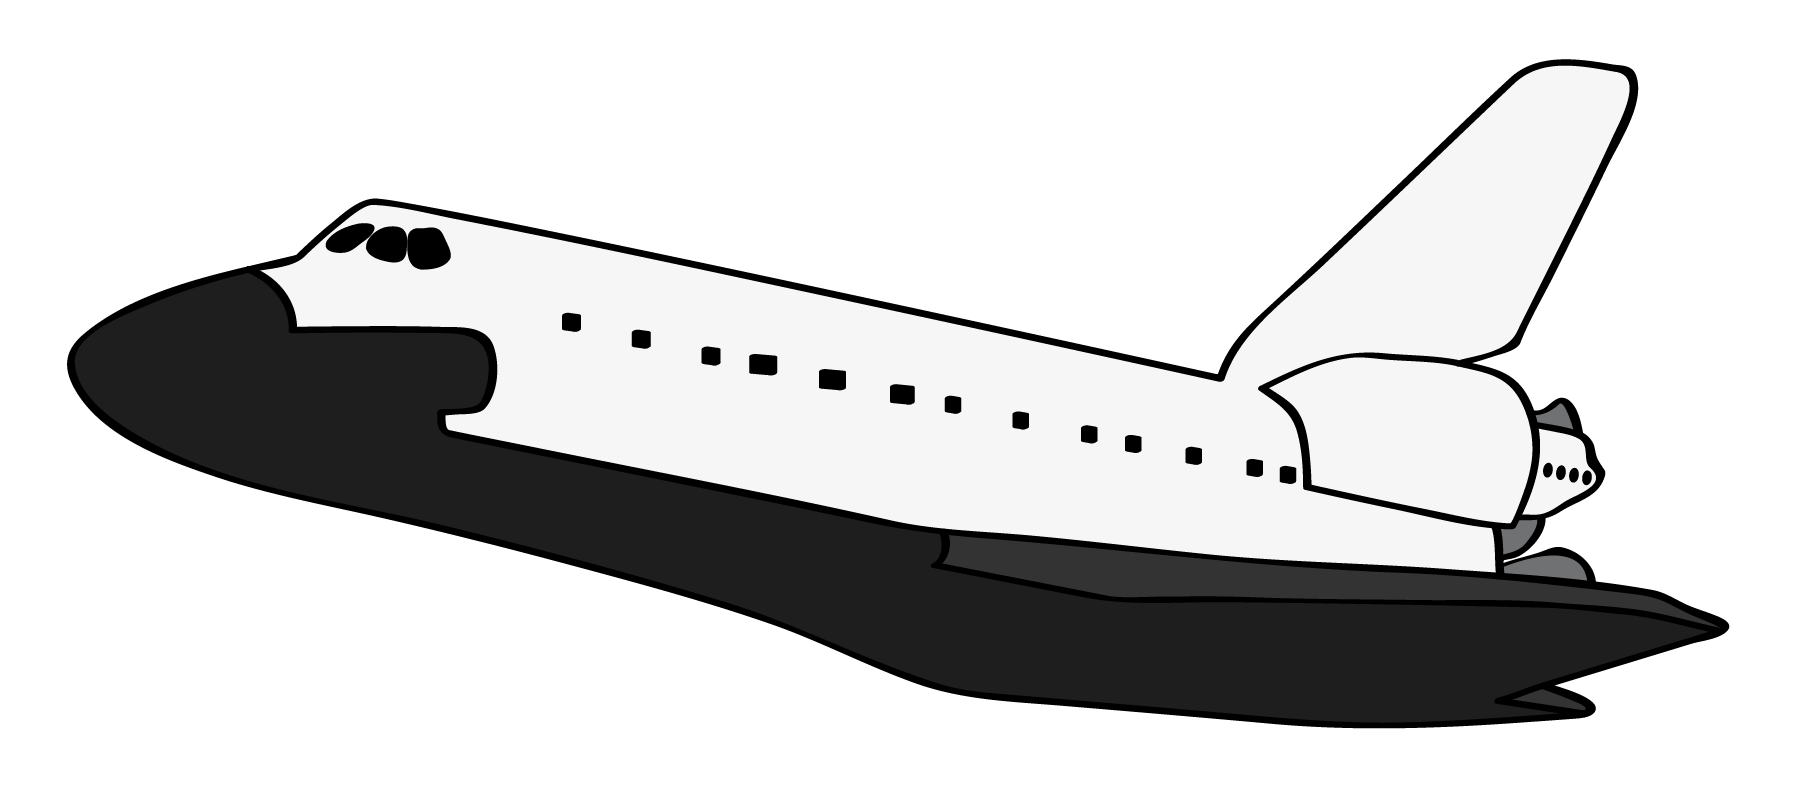 Clipart space shuttle image black and white Collection of Space shuttle clipart | Free download best Space ... image black and white